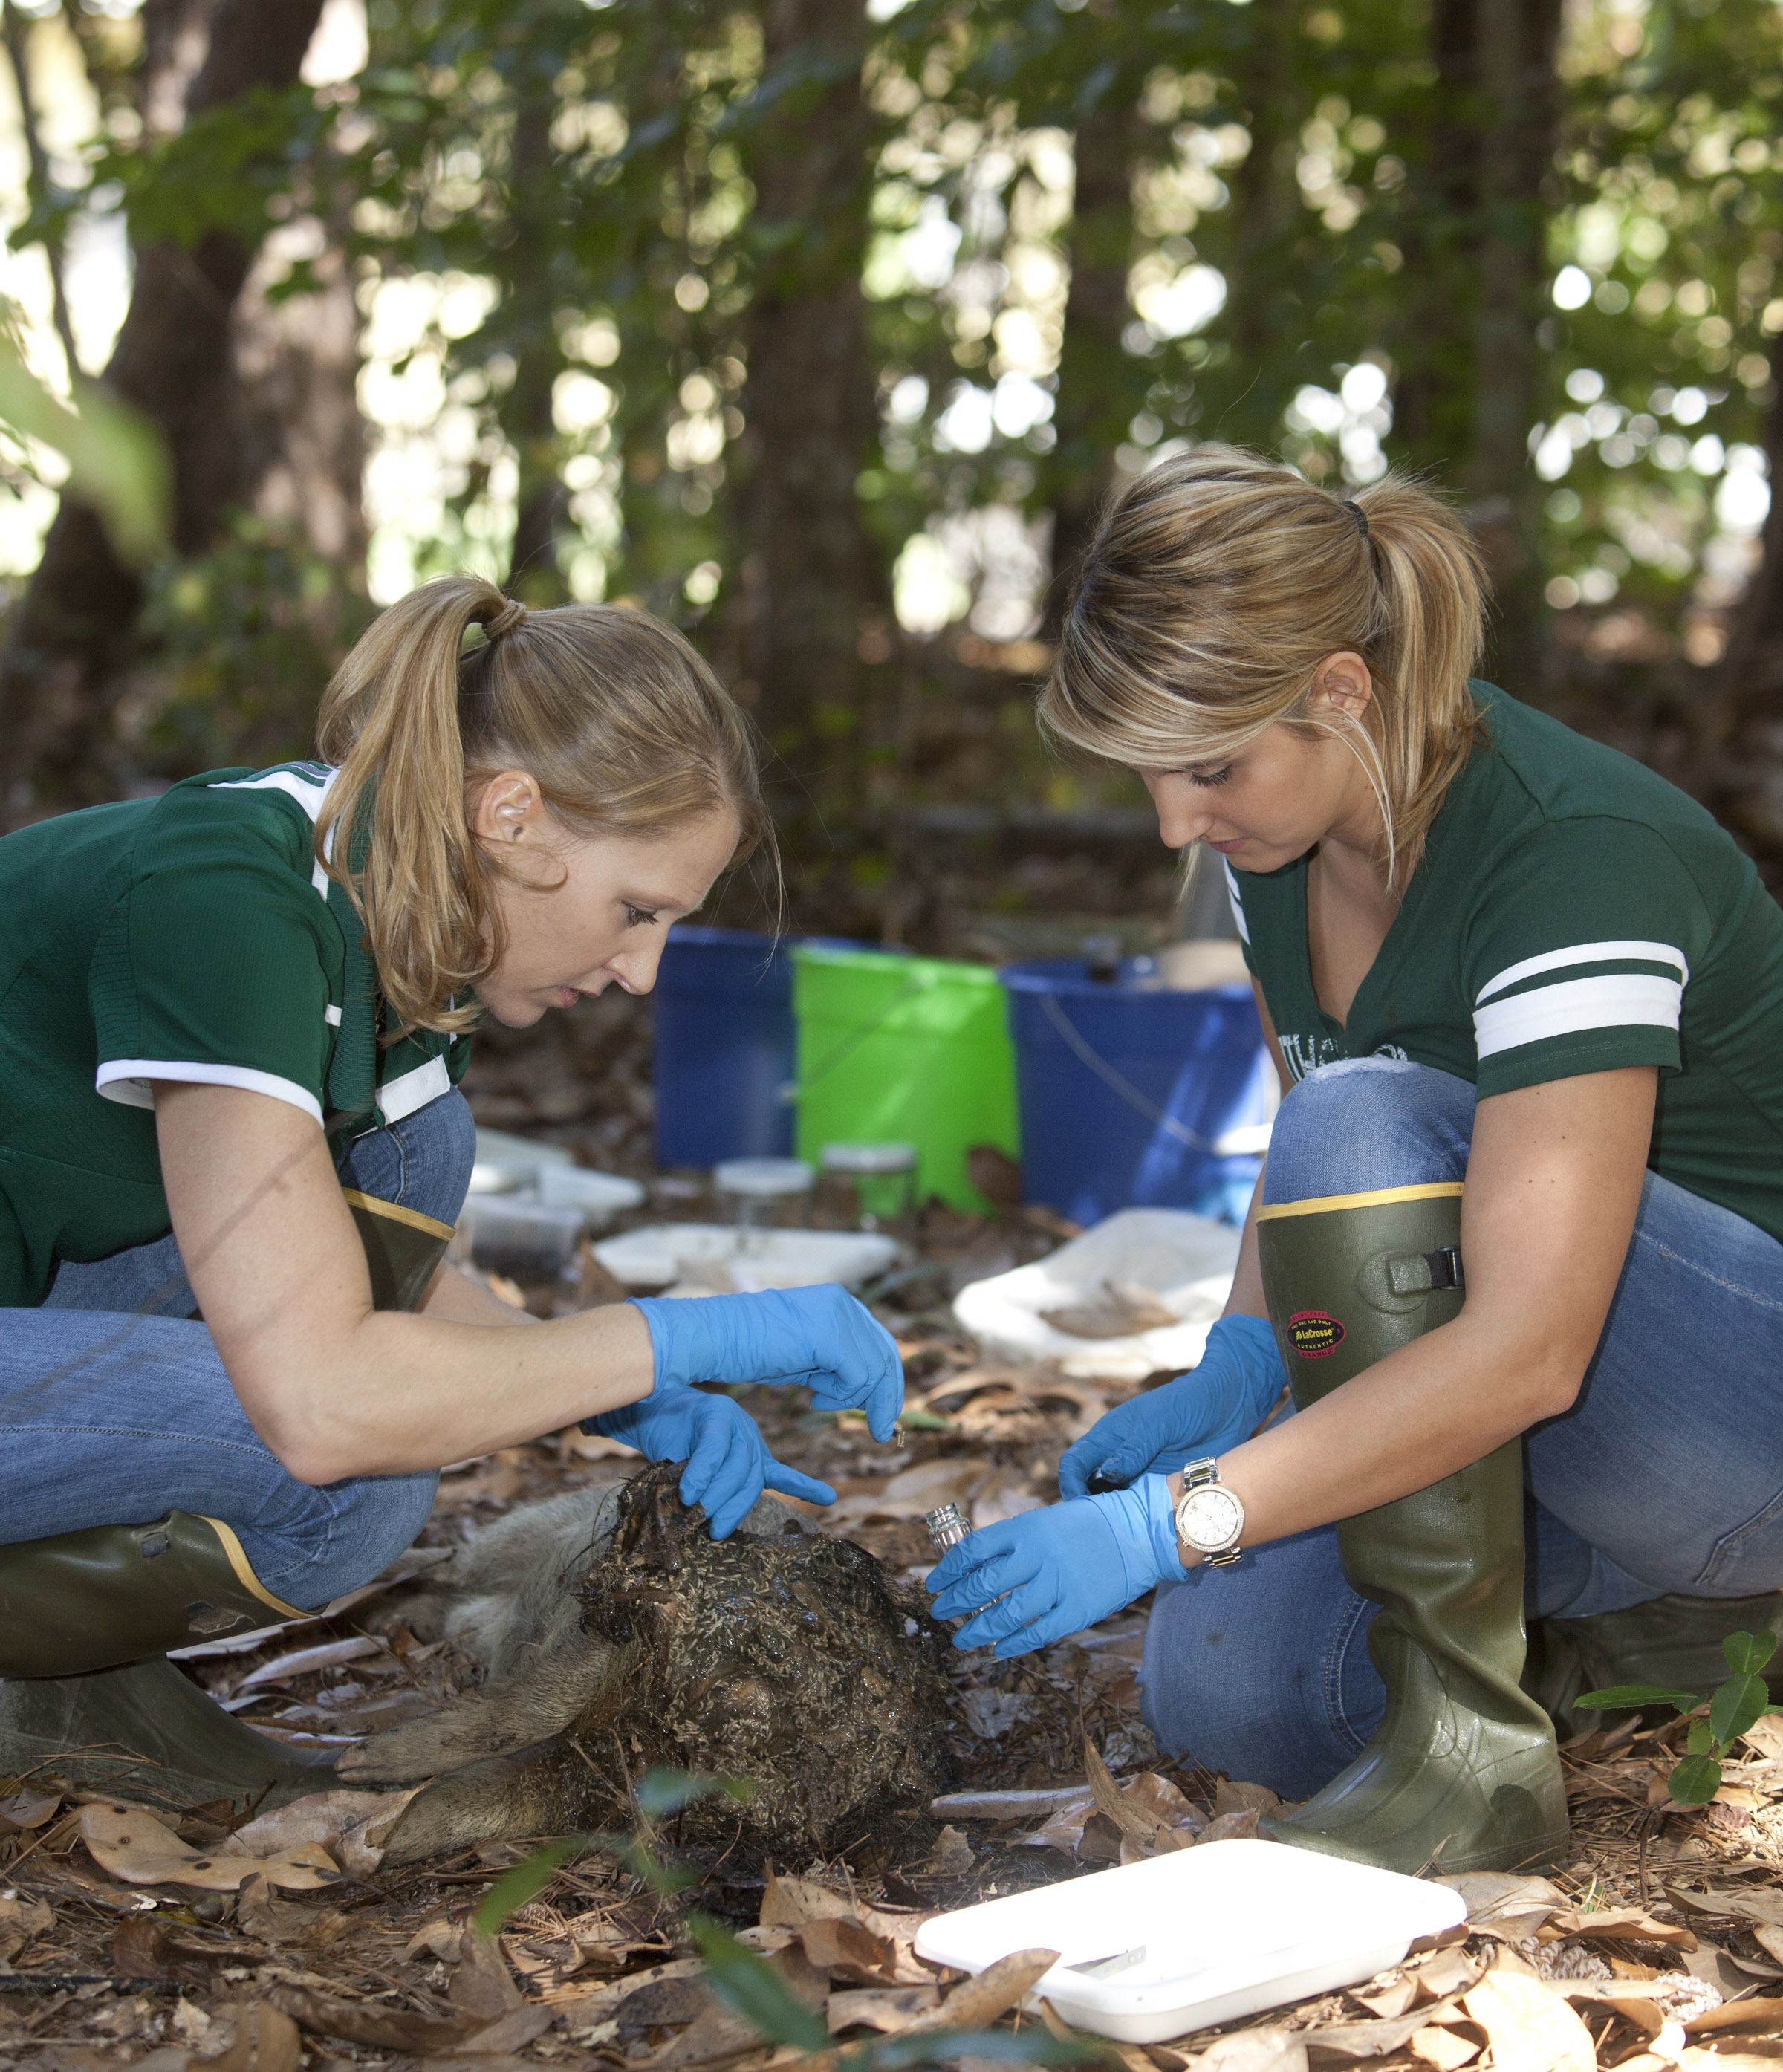 Southeastern S Science On Tap Lecture To Focus On Forensic Entomology